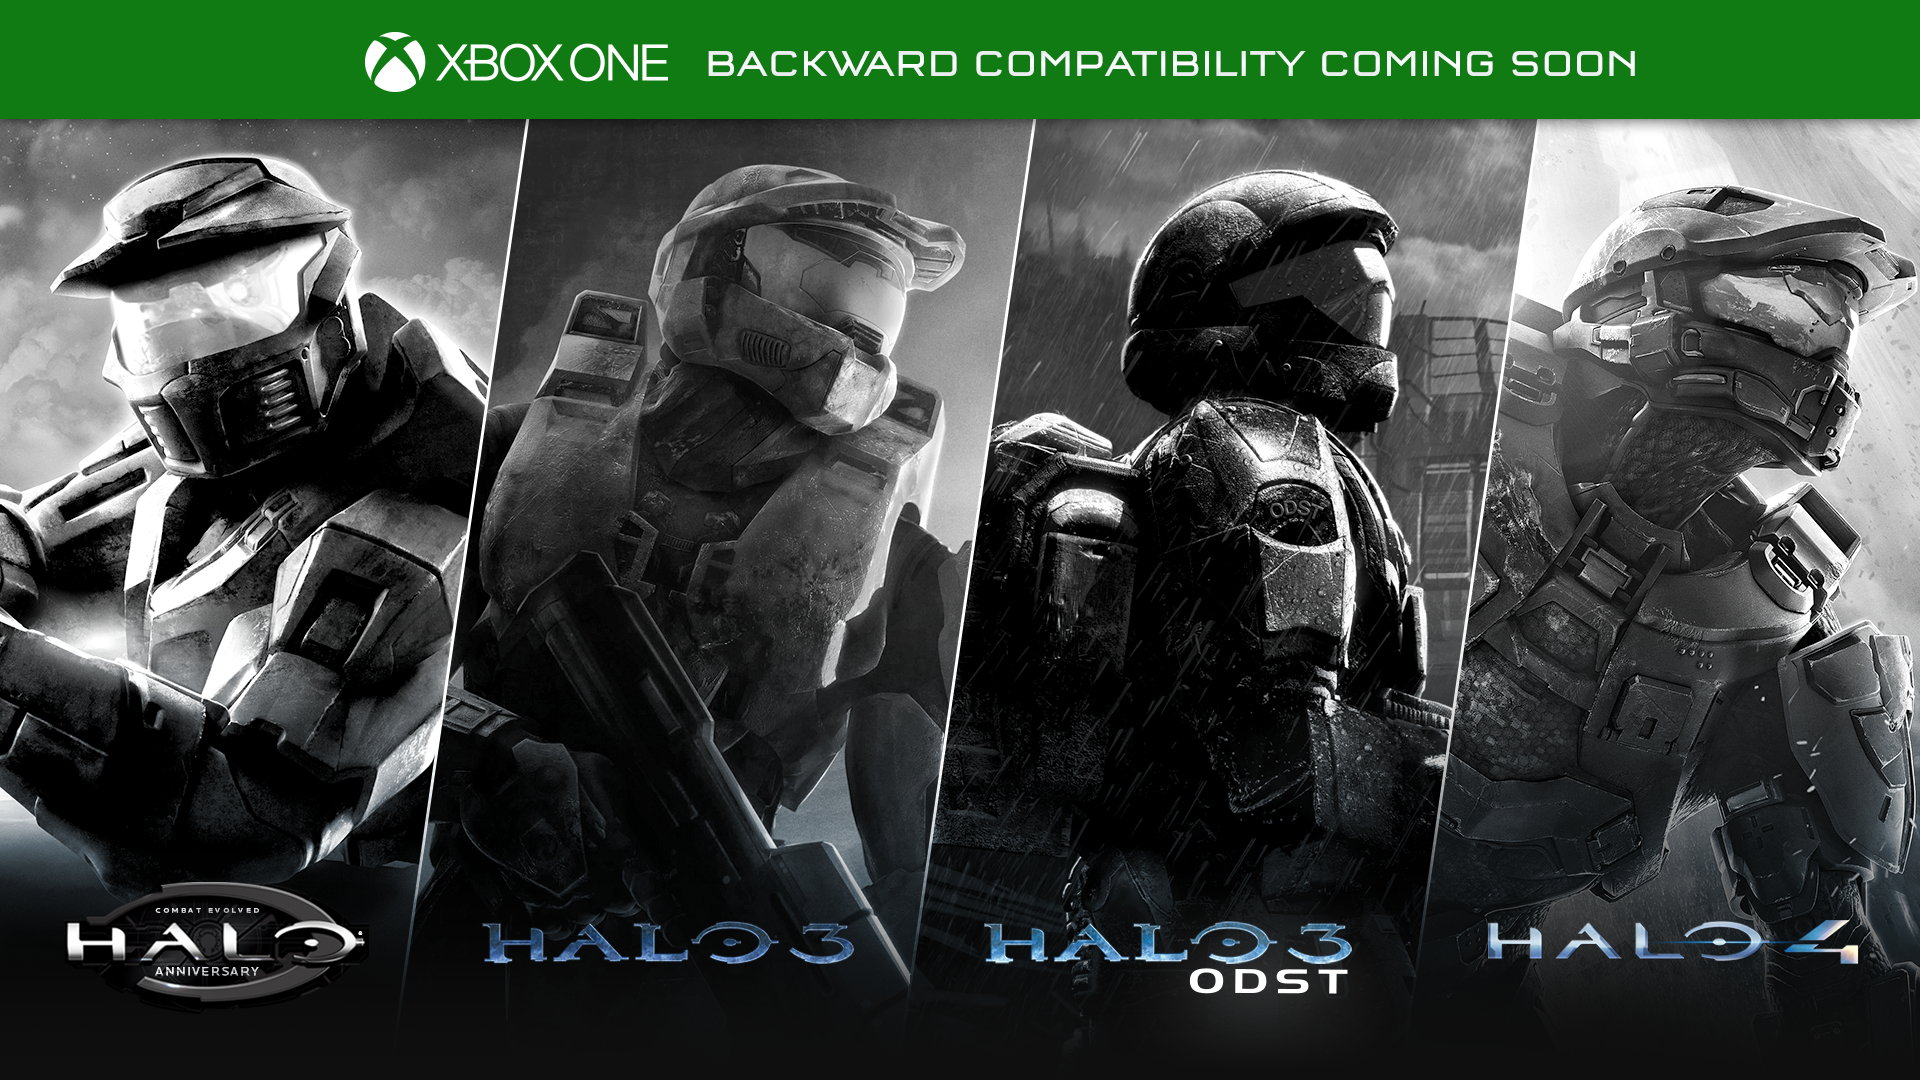 Halo Backwards Compatibility